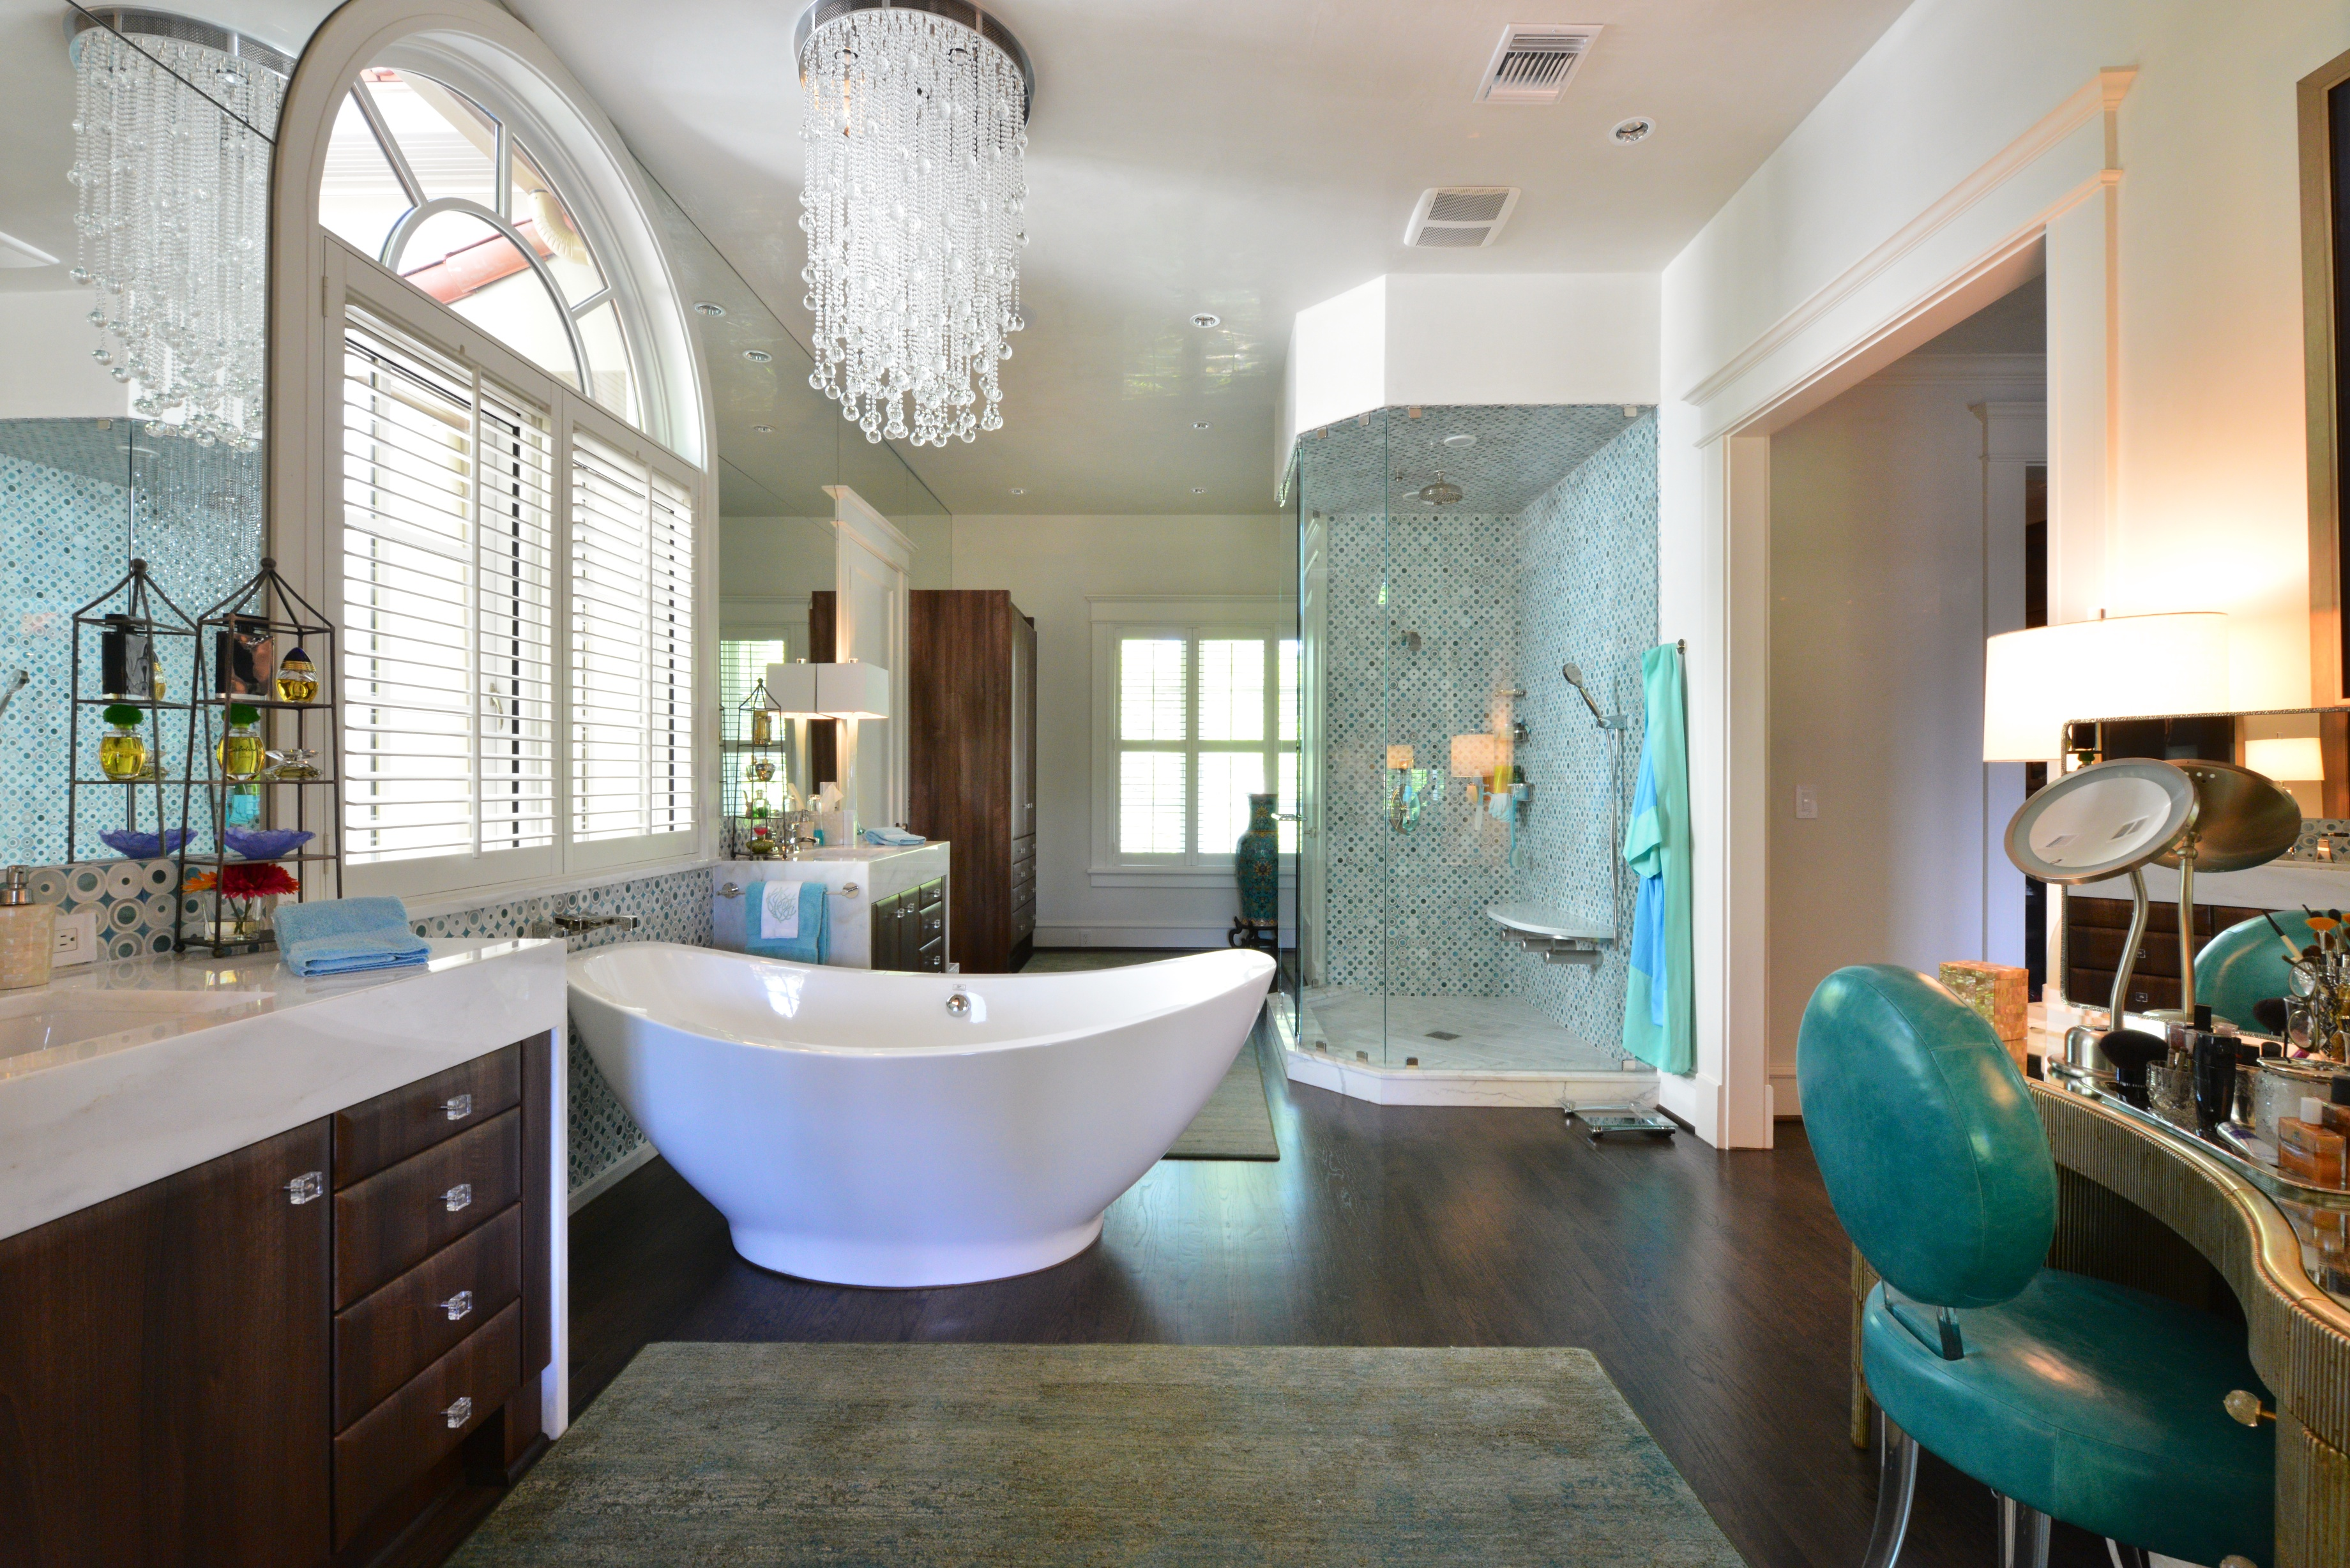 Beautiful bathroom with accent tub and pops of turquoise color